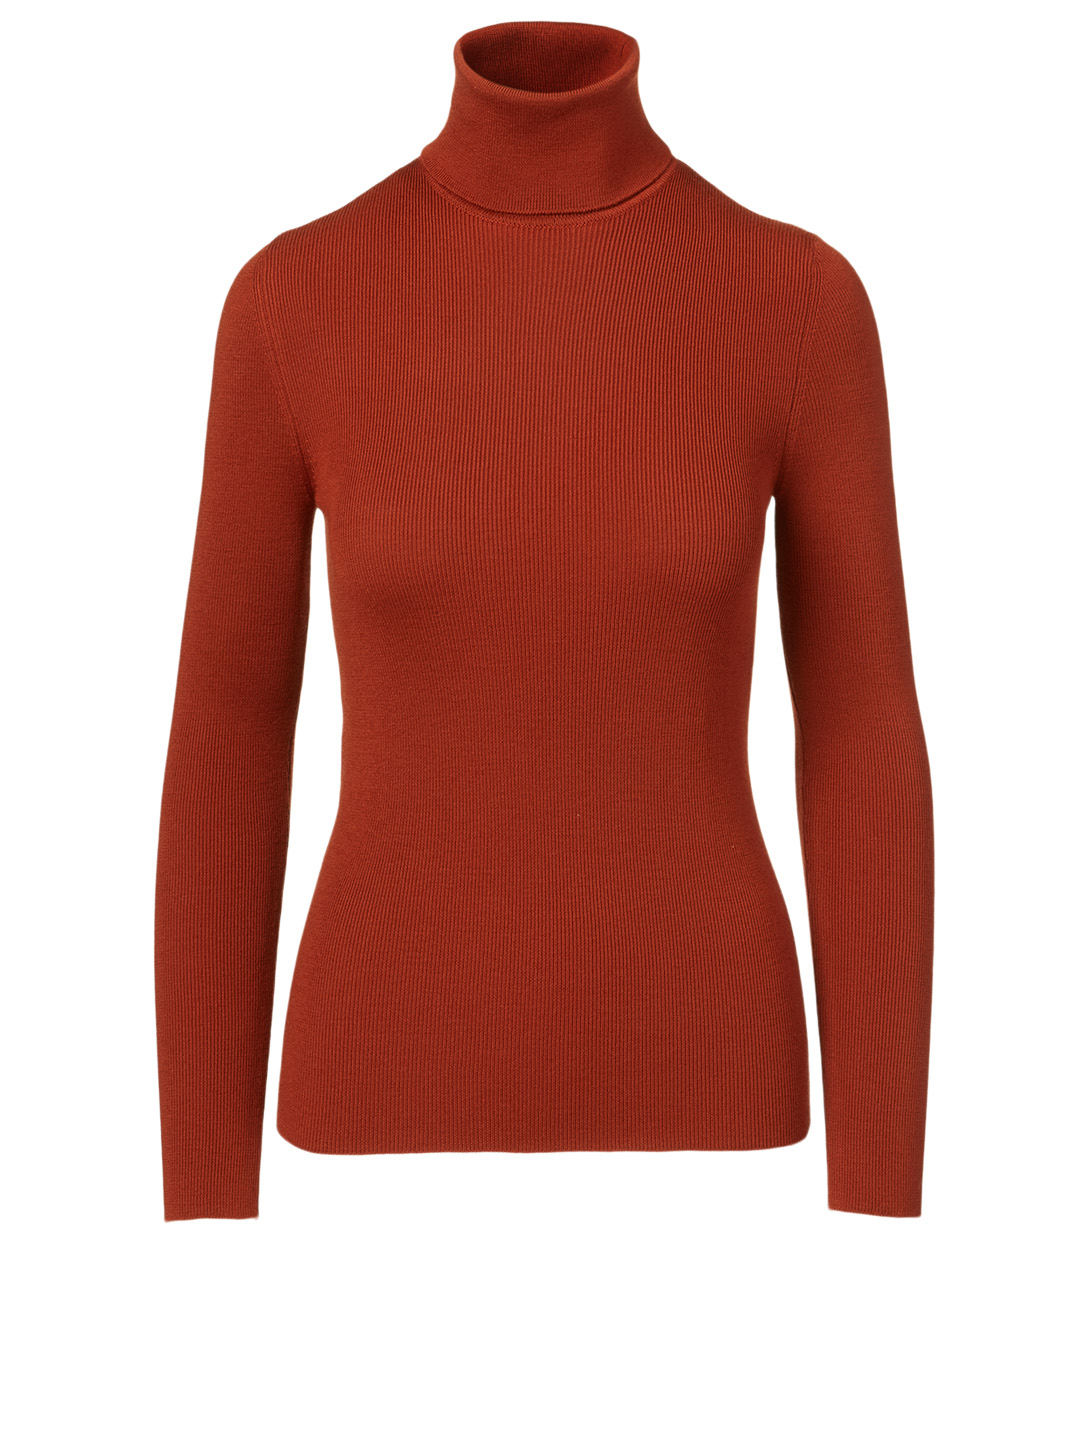 GUCCI Fine Wool Turtleneck Top Women's Brown